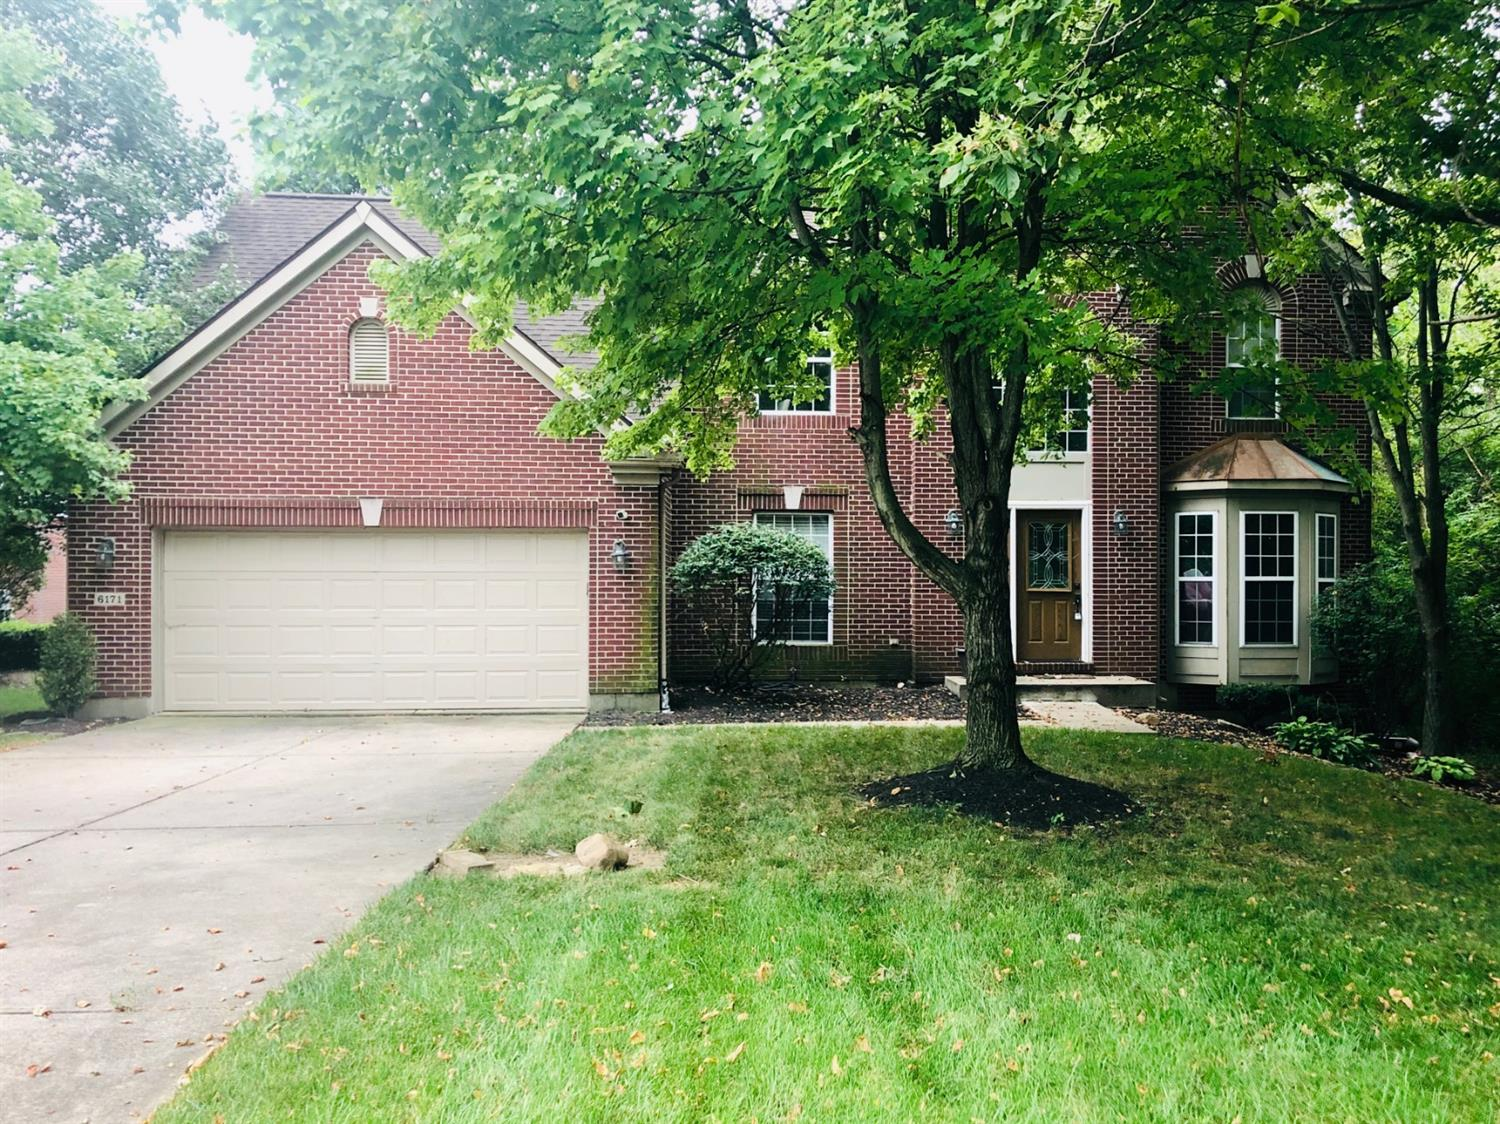 Property for sale at 6171 Green Knoll Circle, Fairfield Twp,  Ohio 45011